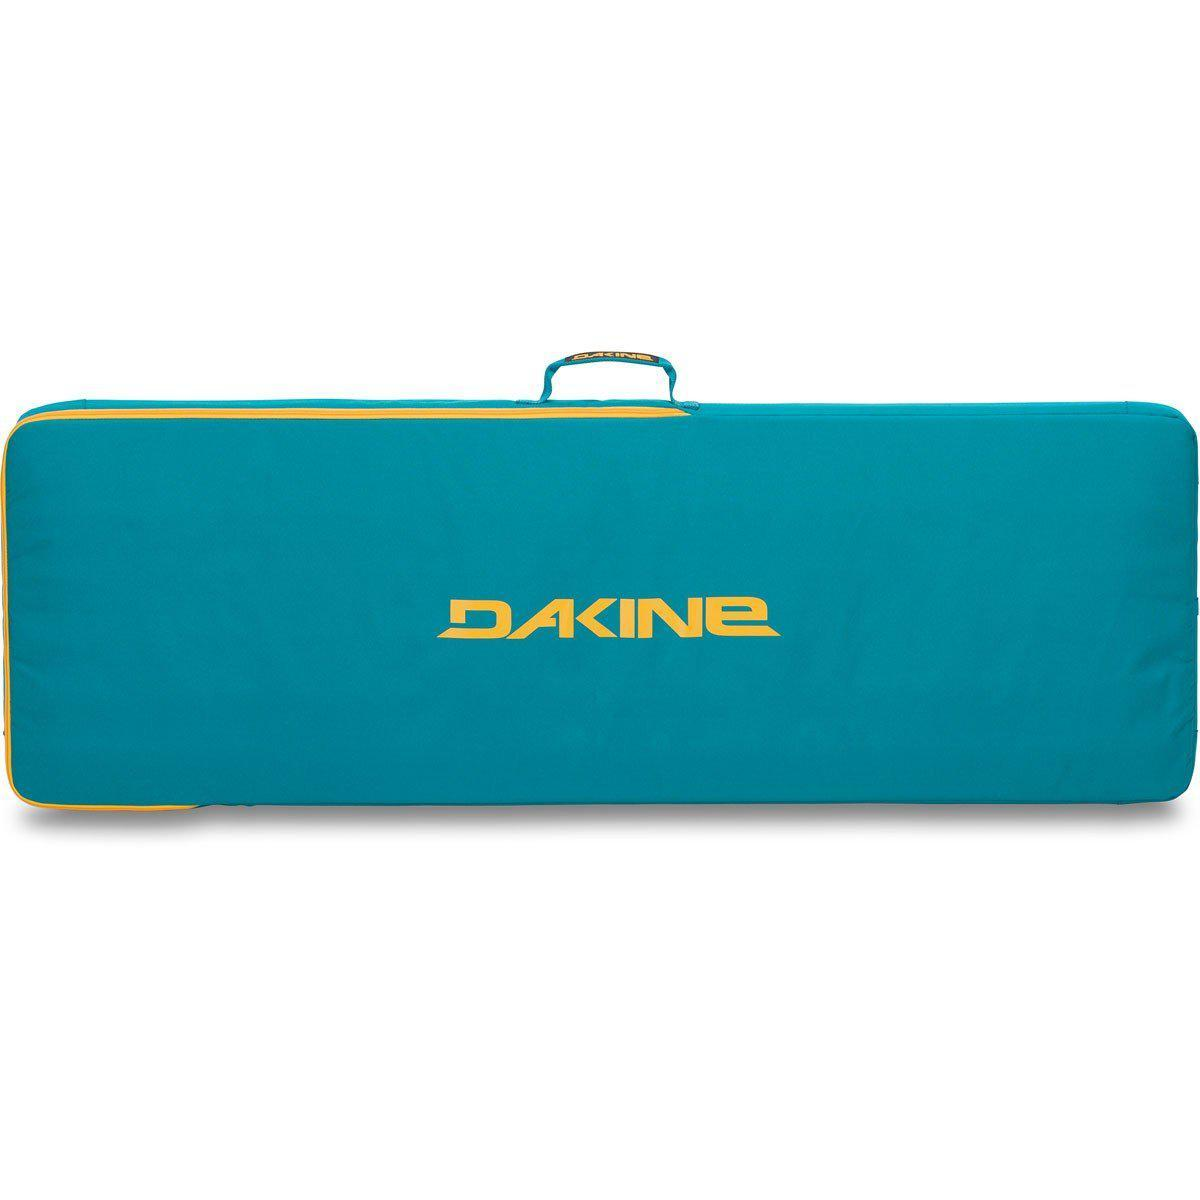 Dakine Slider Bag-Big Winds